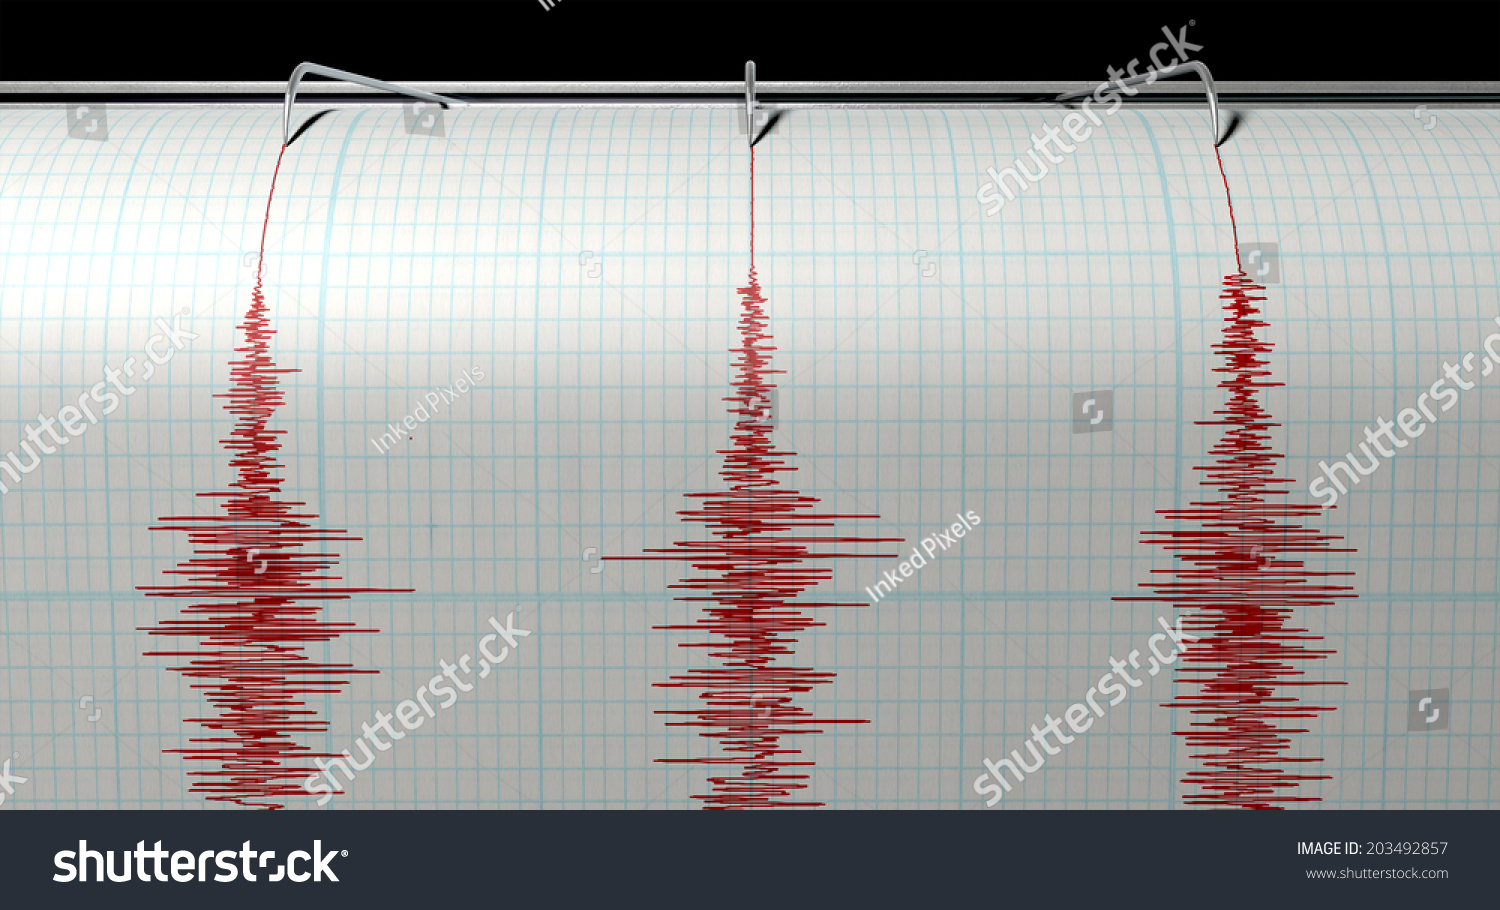 essay on earthquakes essay on earthquakes essay on earthquakes in